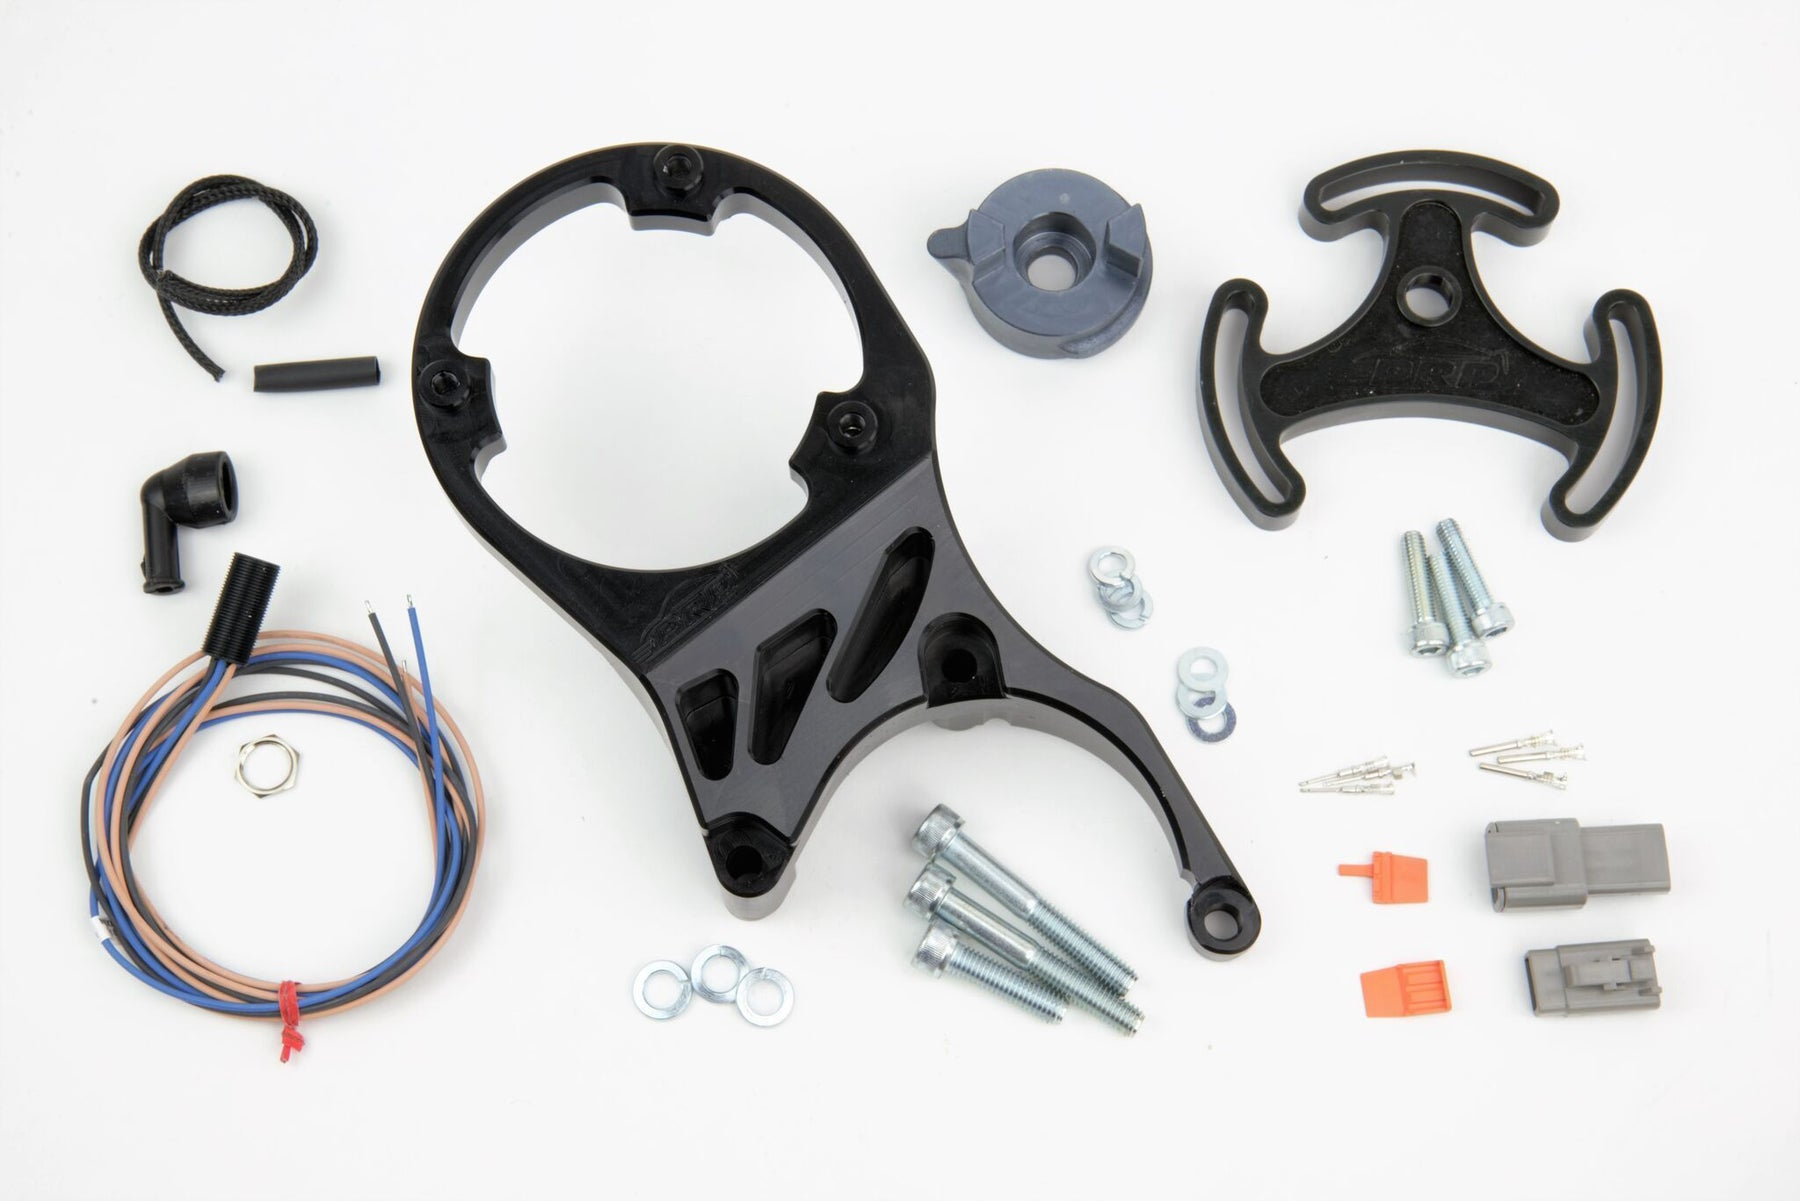 PRP 1J/2J JZ Series Cam Trigger Kit With Cas Basket